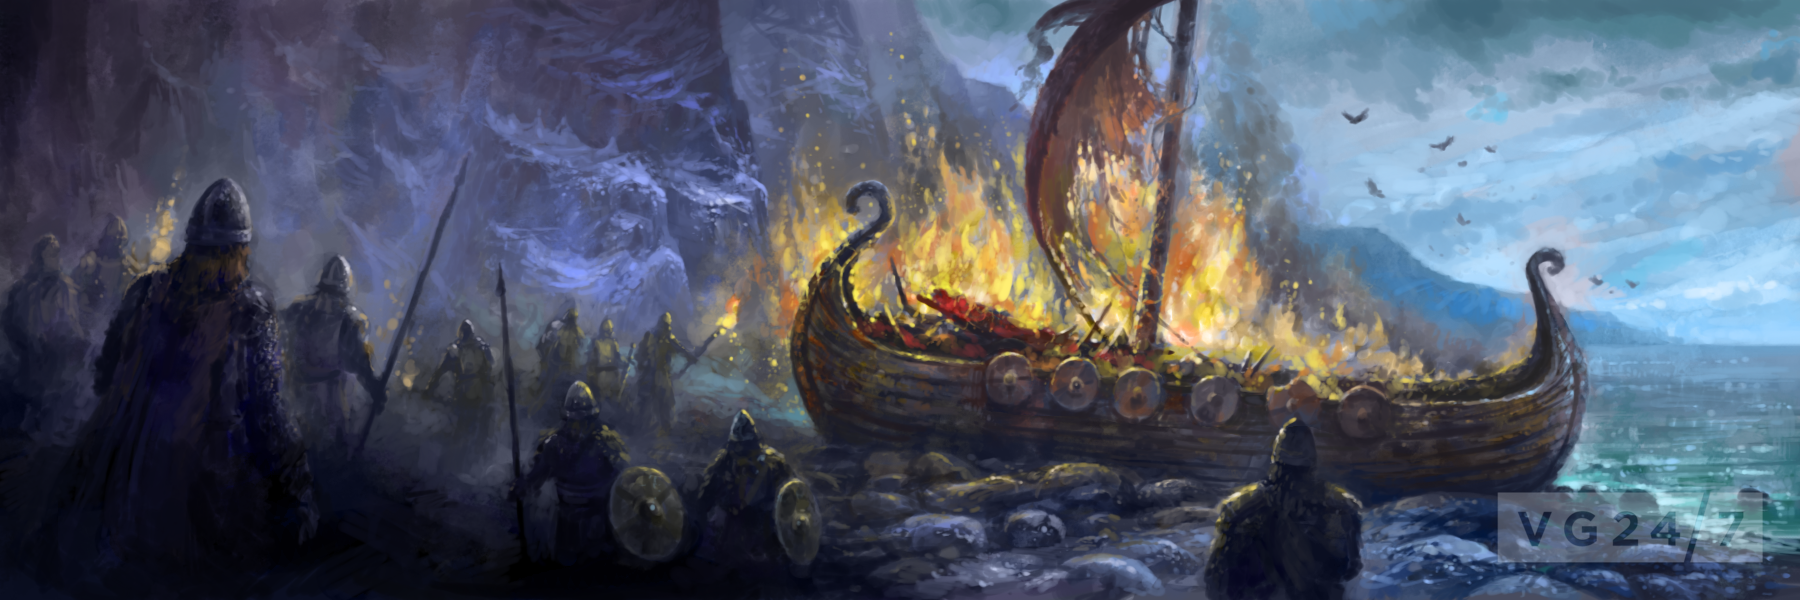 Crusader Kings 2 The Old Gods Announced Expansion Due Q2